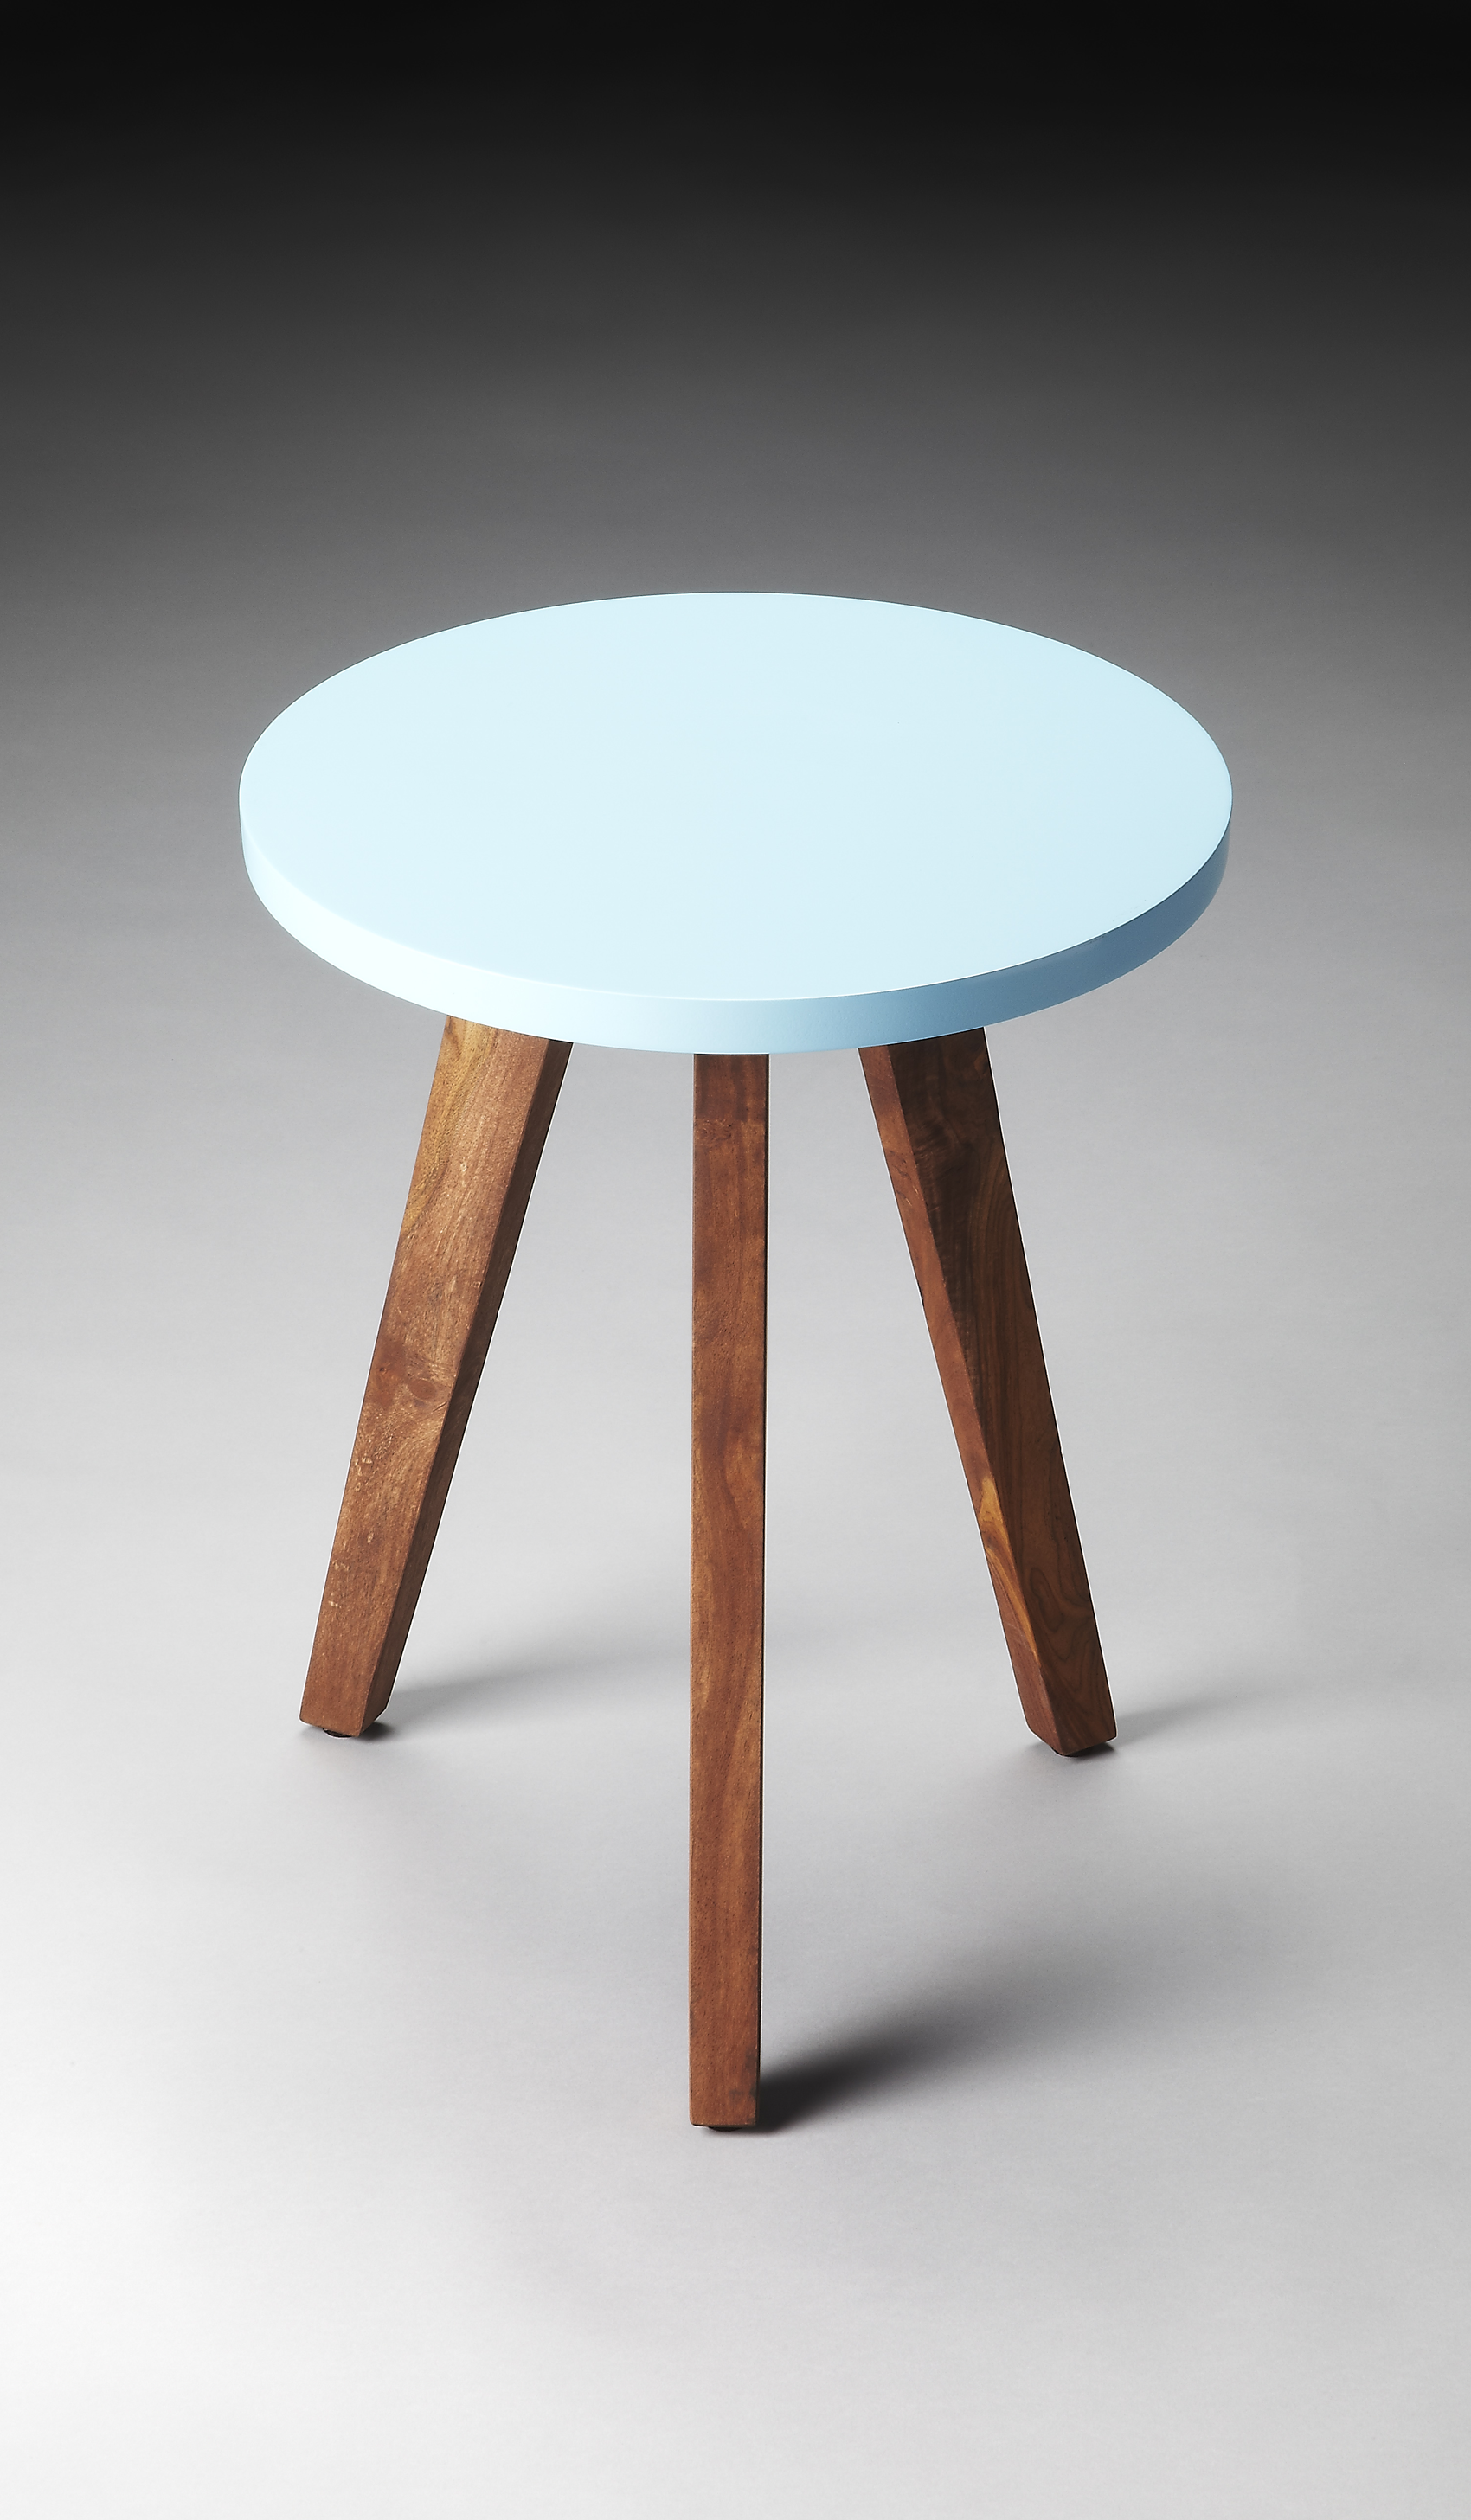 Contemporary side table with three wooden legs